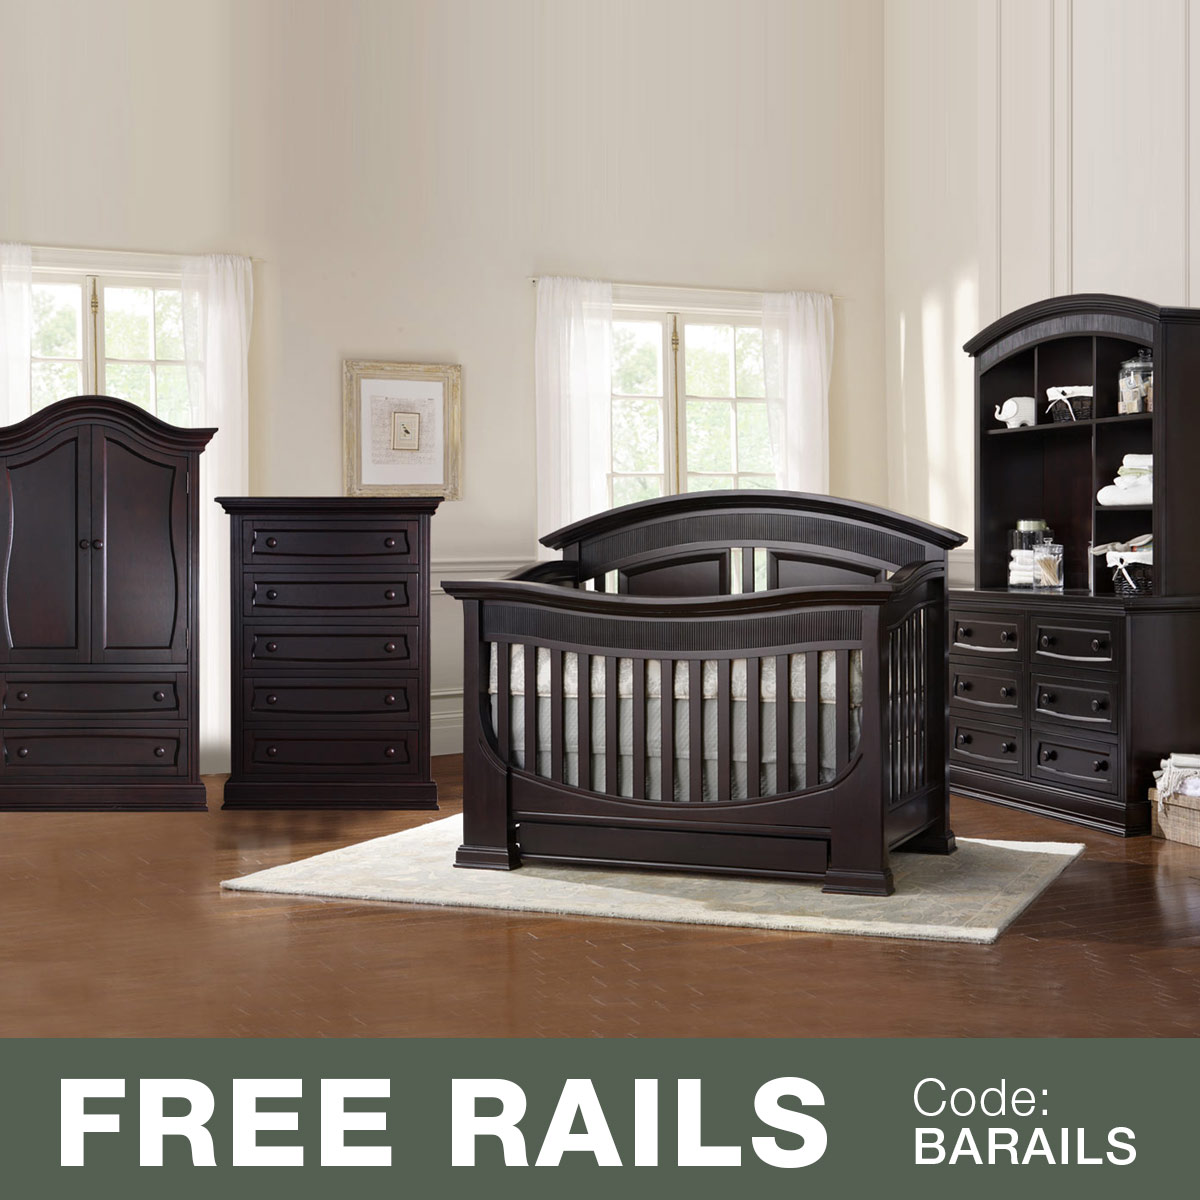 Baby Appleseed 5 Piece Nursery Set   Chelmsford 3 In 1 Convertible Crib,  Davenport Double Dresser With Hutch, 5 Drawer Tall Dresser And Armoire In  Espresso ...